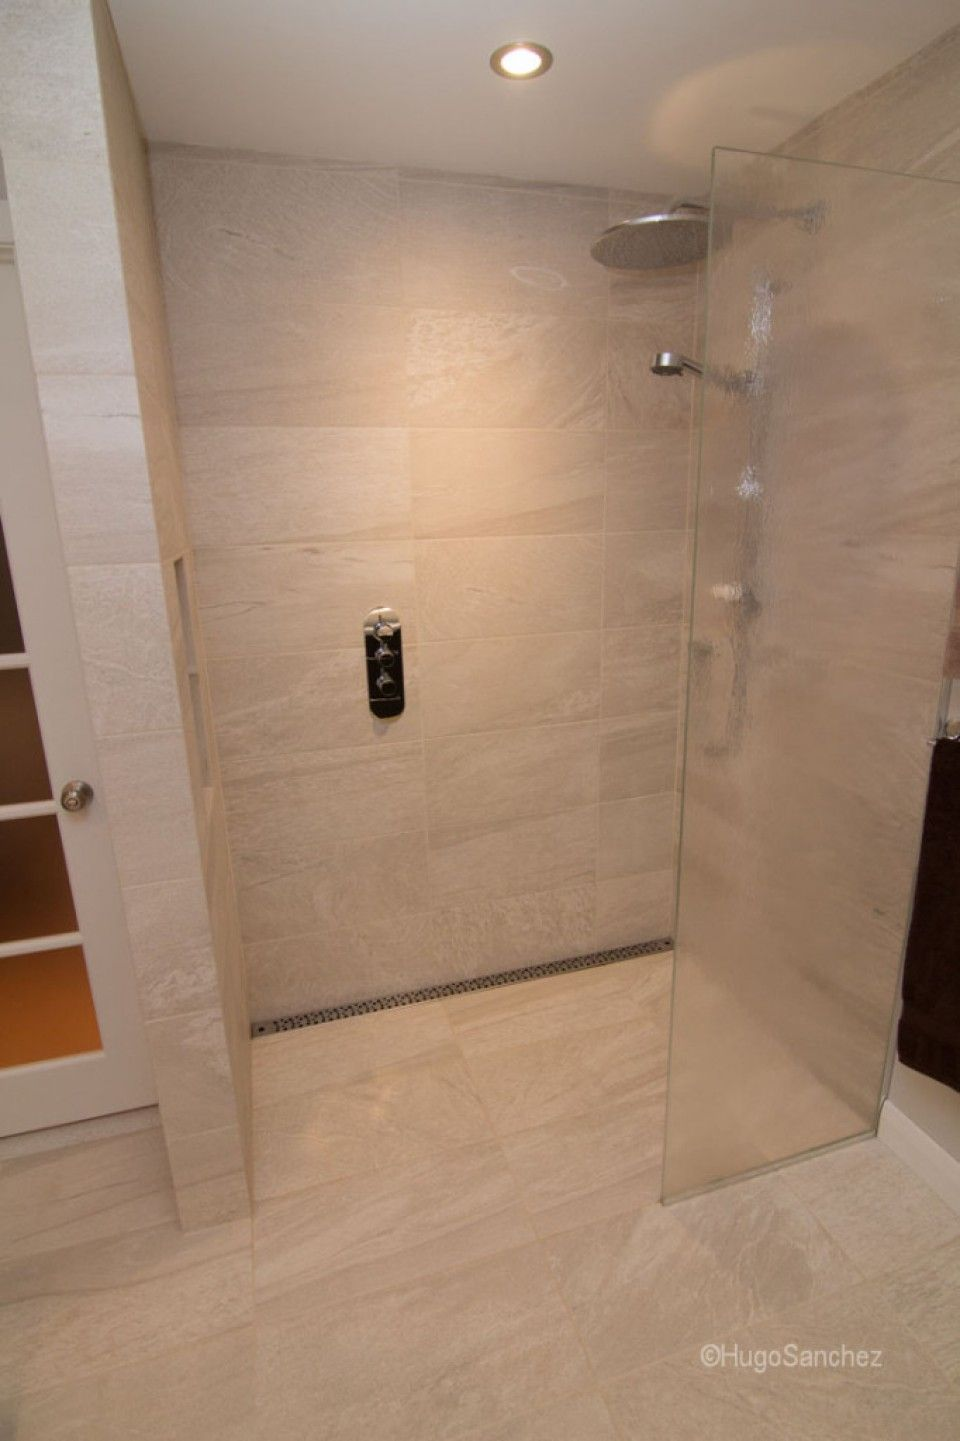 Curbless shower designs c ramiques hugo sanchez Designs for bathrooms with shower